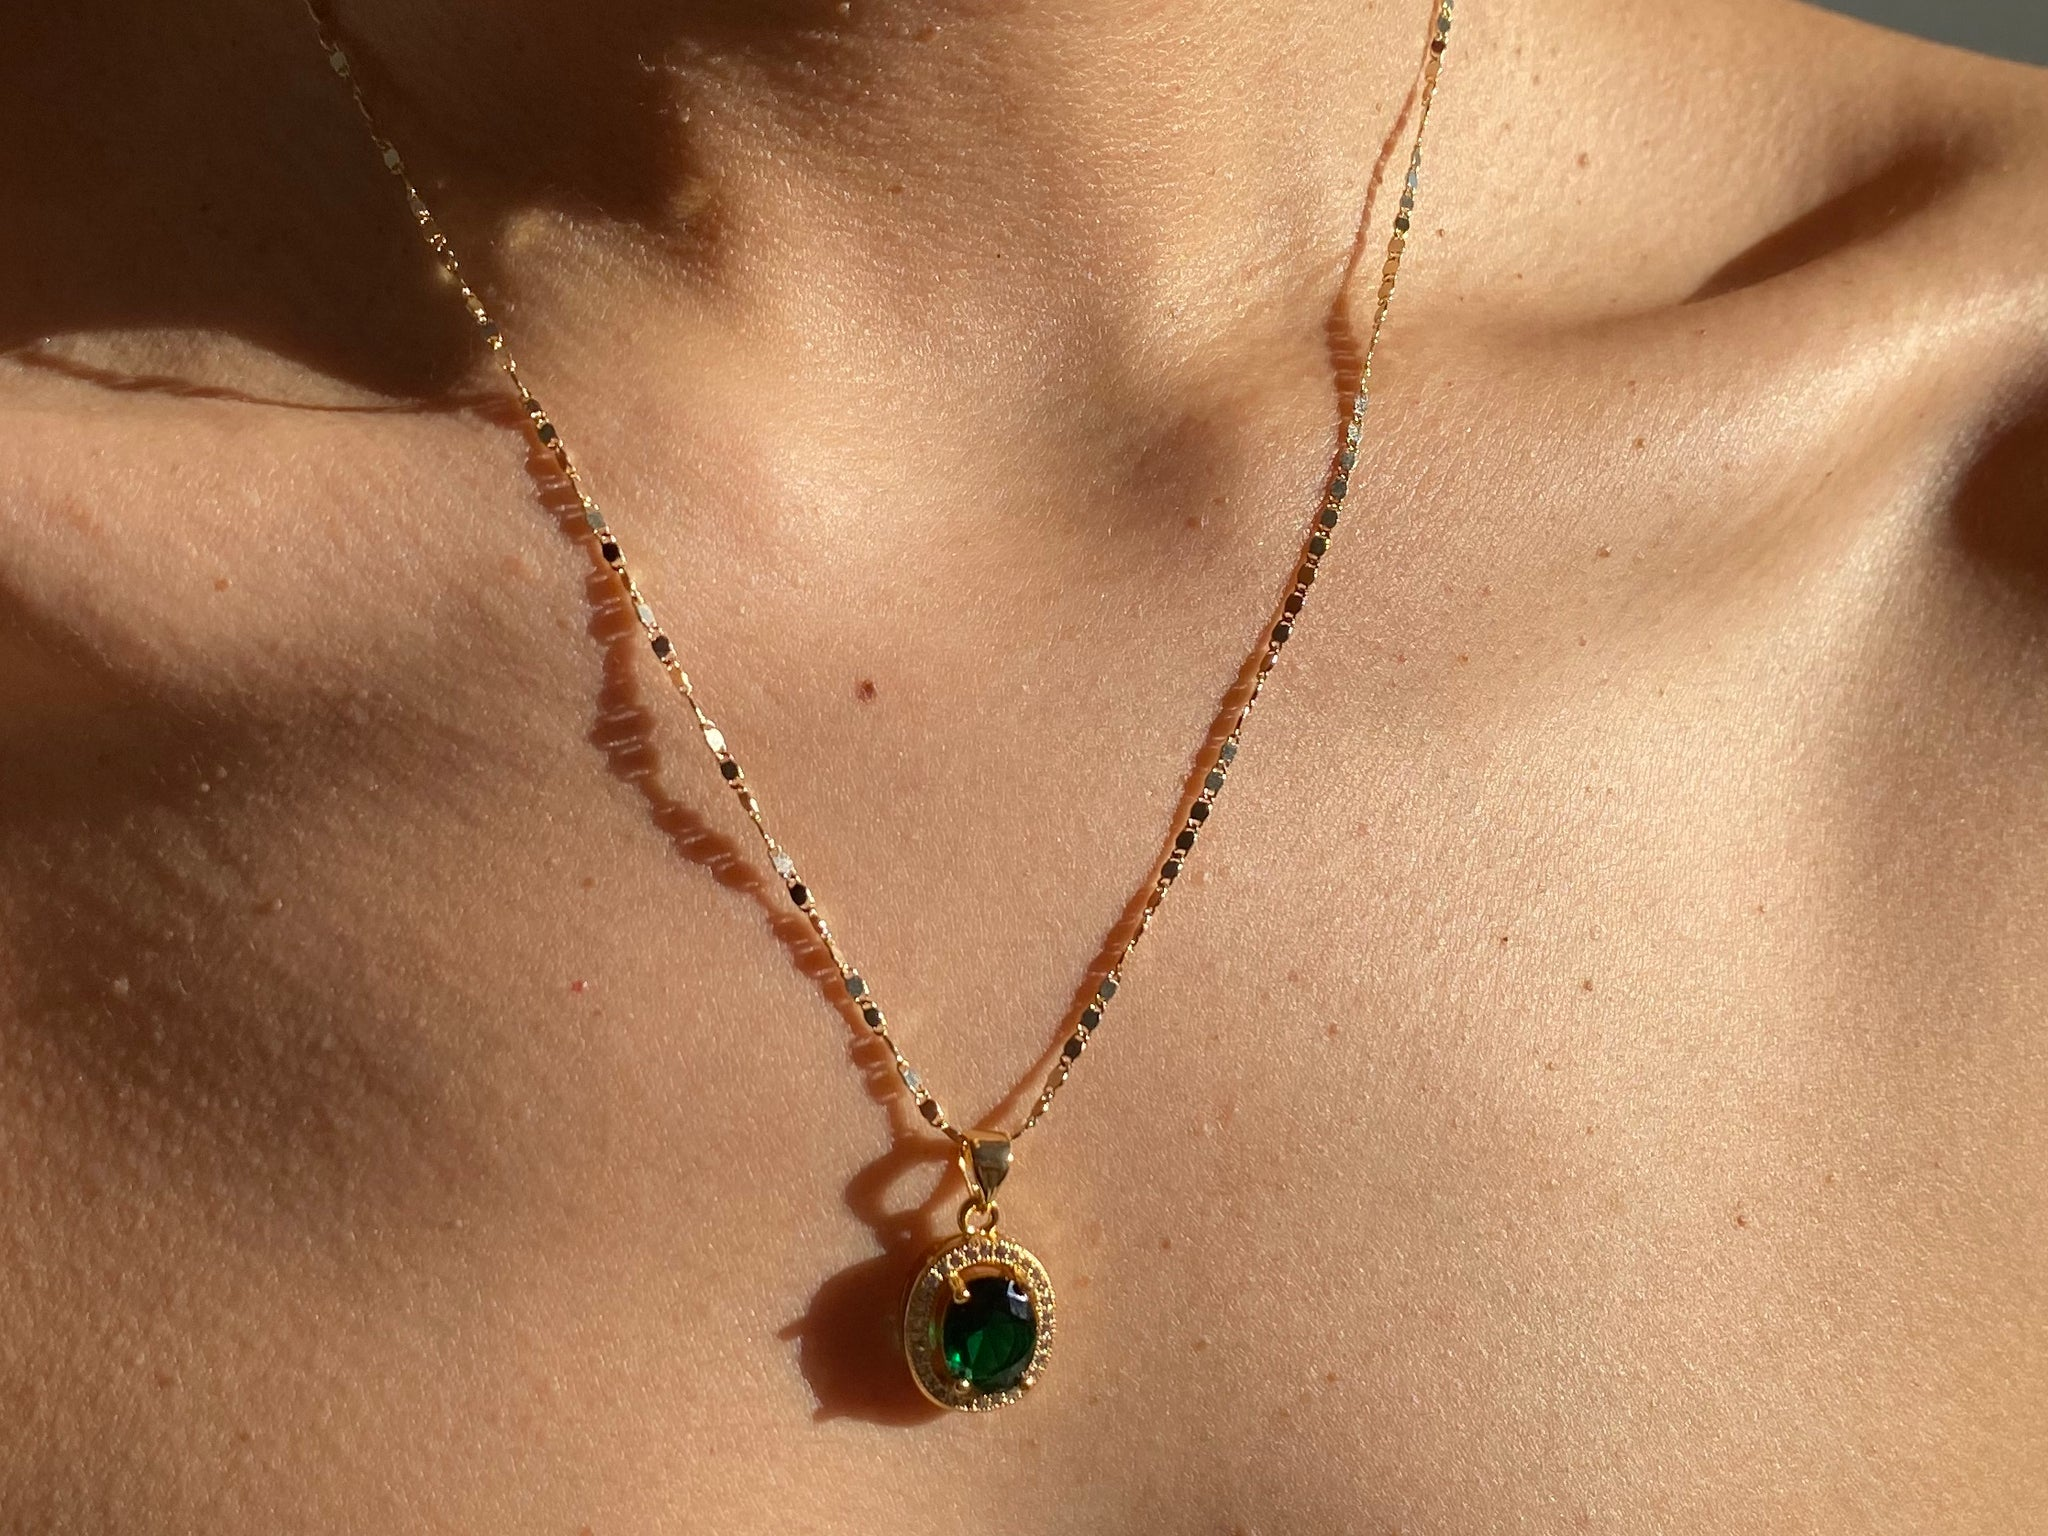 Emerald stone, emerald necklace, gold necklace, gold jewelry, gold necklace, dainty necklace, green necklace